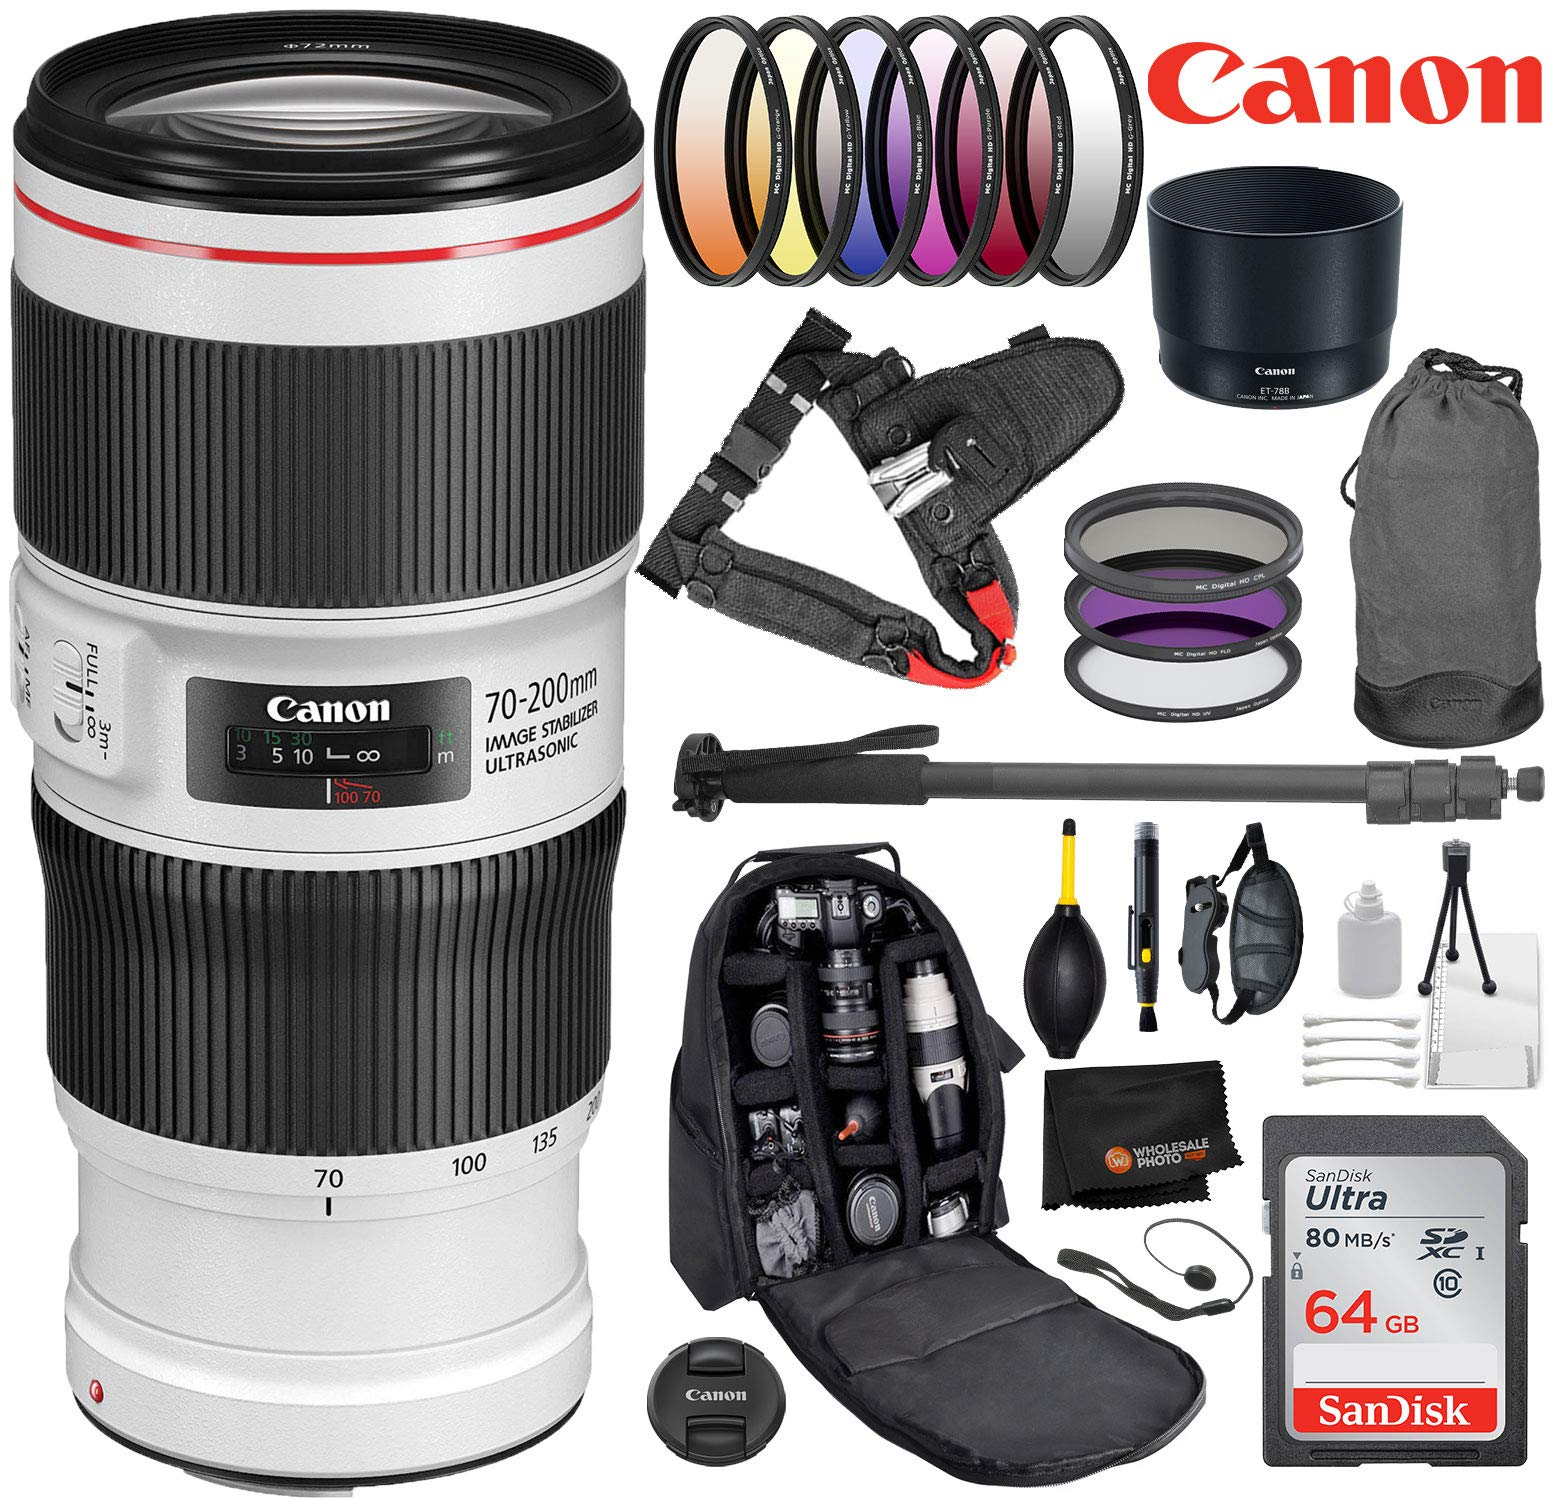 Canon EF 70-200mm f/4L is II USM Lens Bundle with Professional Bundle Package Deal Kit for EOS 7D Mark II, 6D Mark II, 5D Mark IV, 5D S R, 5D S, 5D Mark III, 80D, 70D, 77D, T5, T6, T6s, T7i, SL2